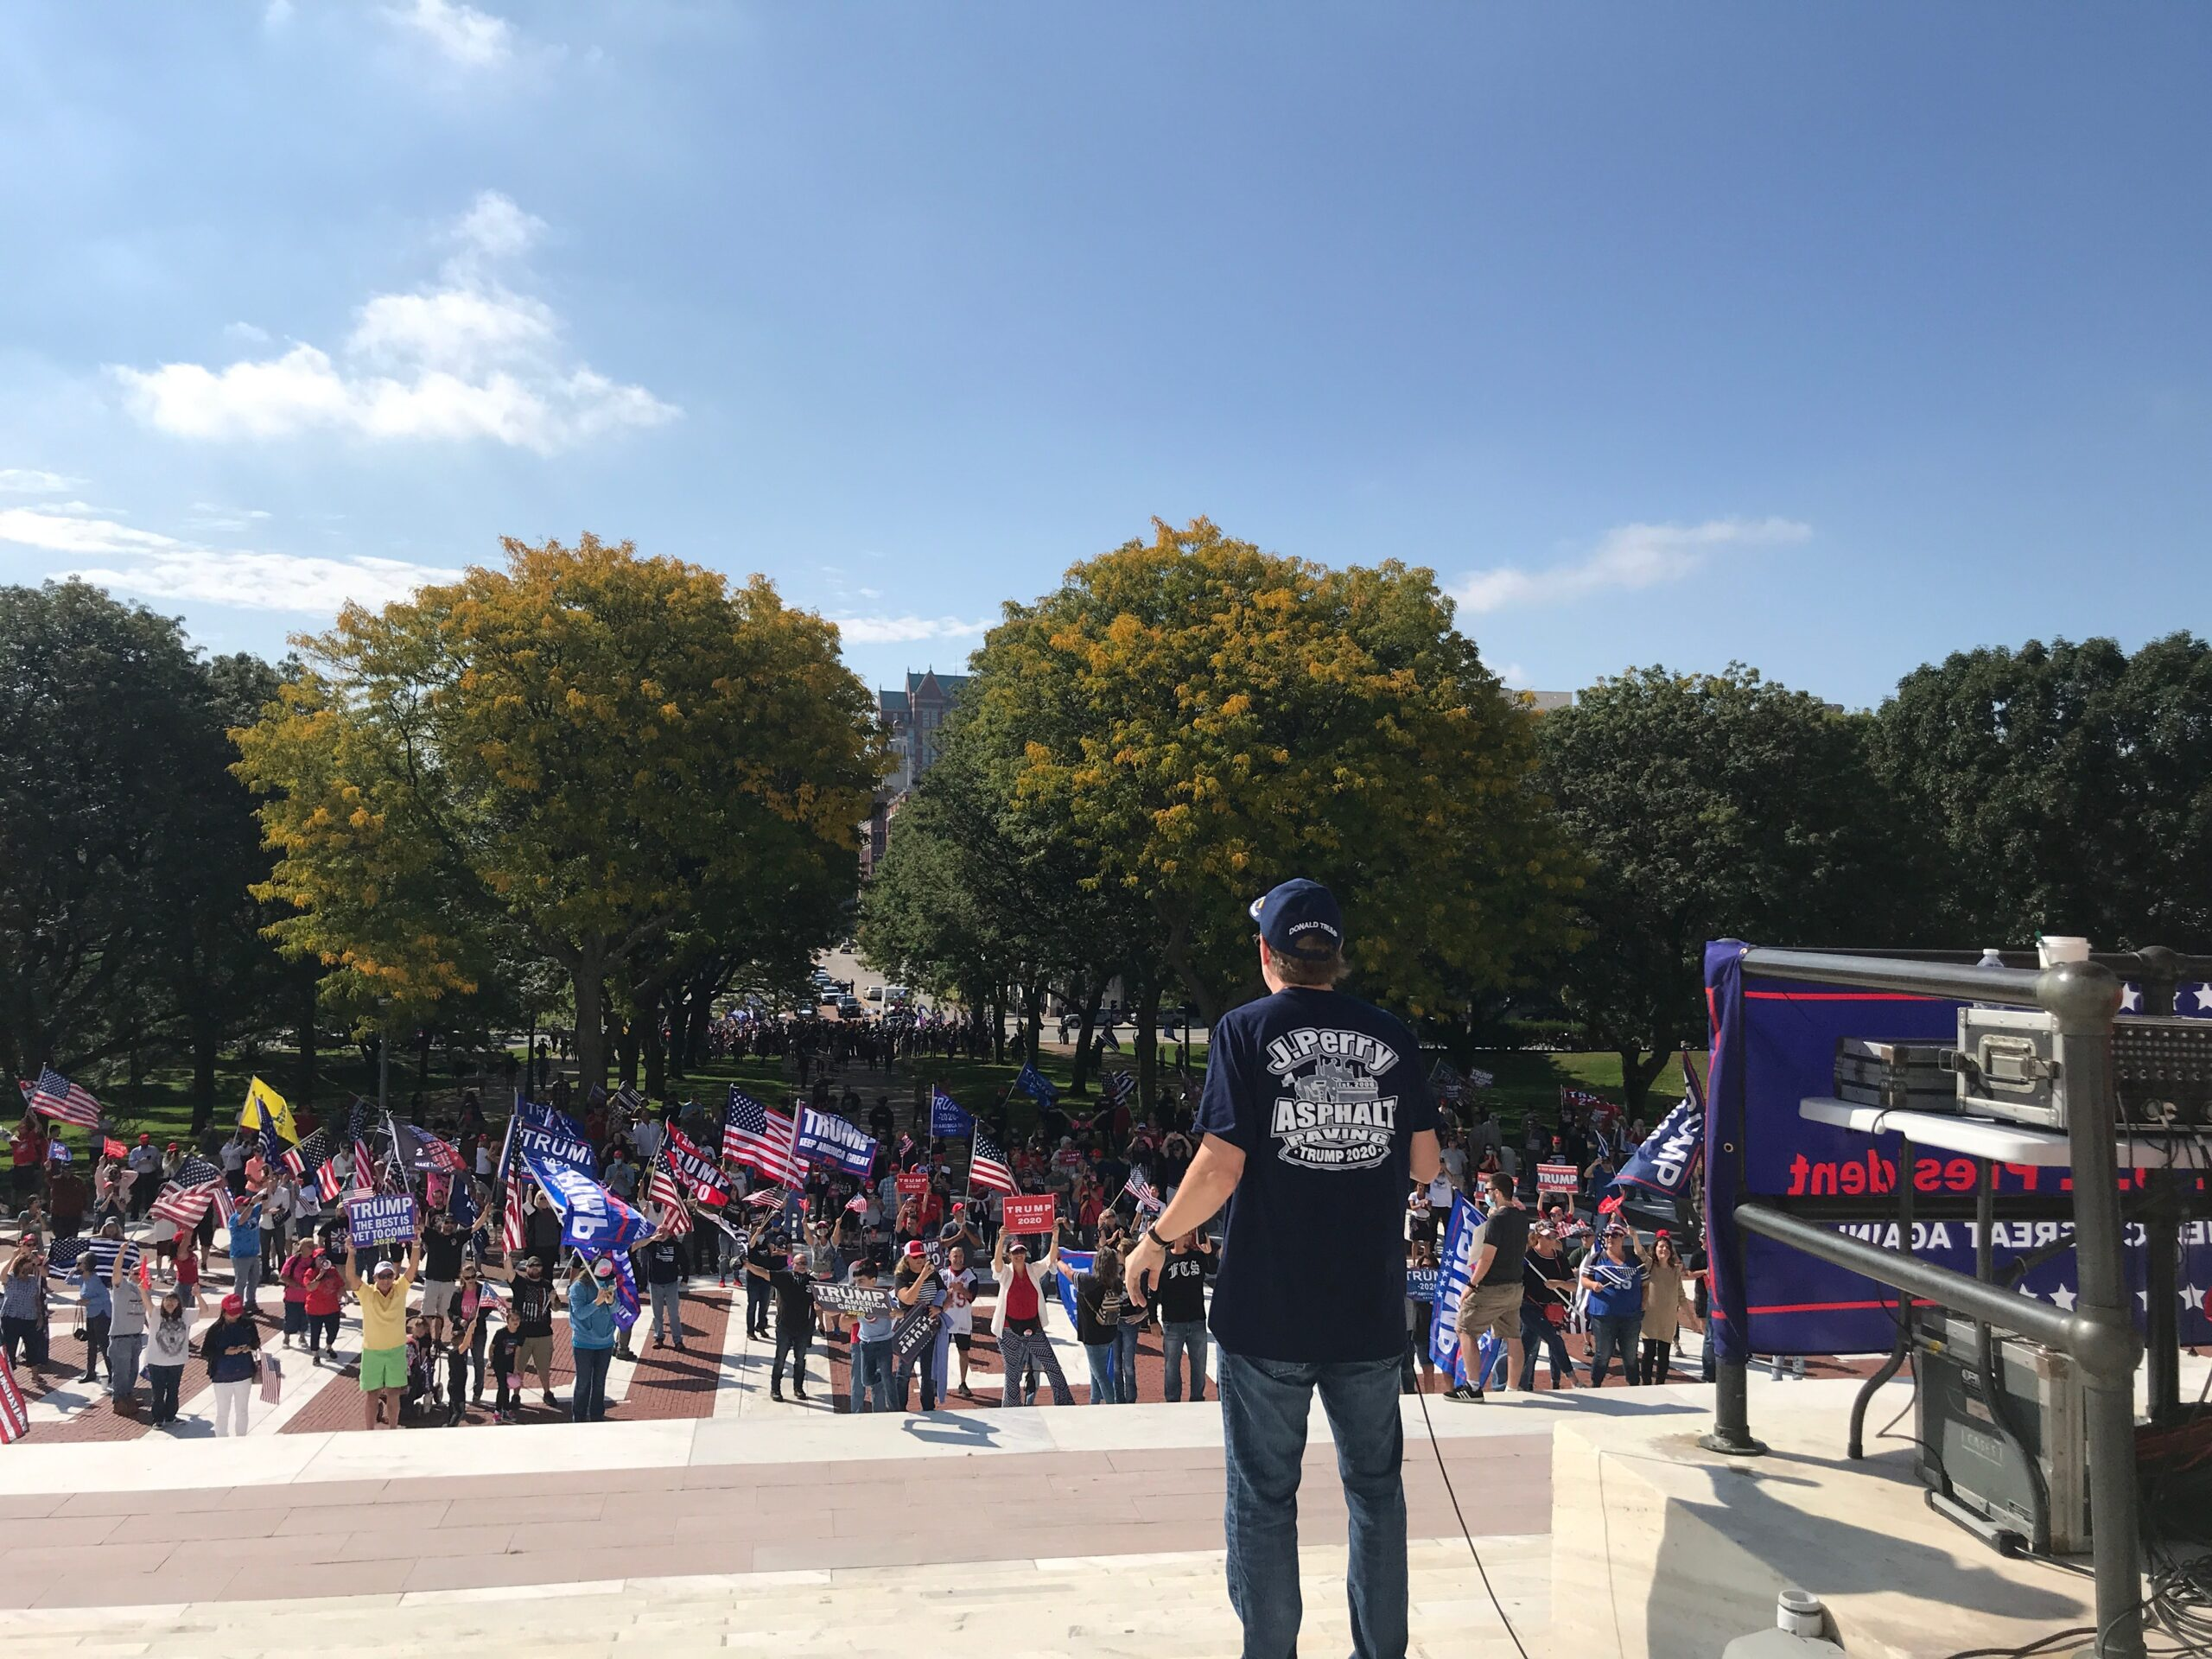 Video: Voting reform rally